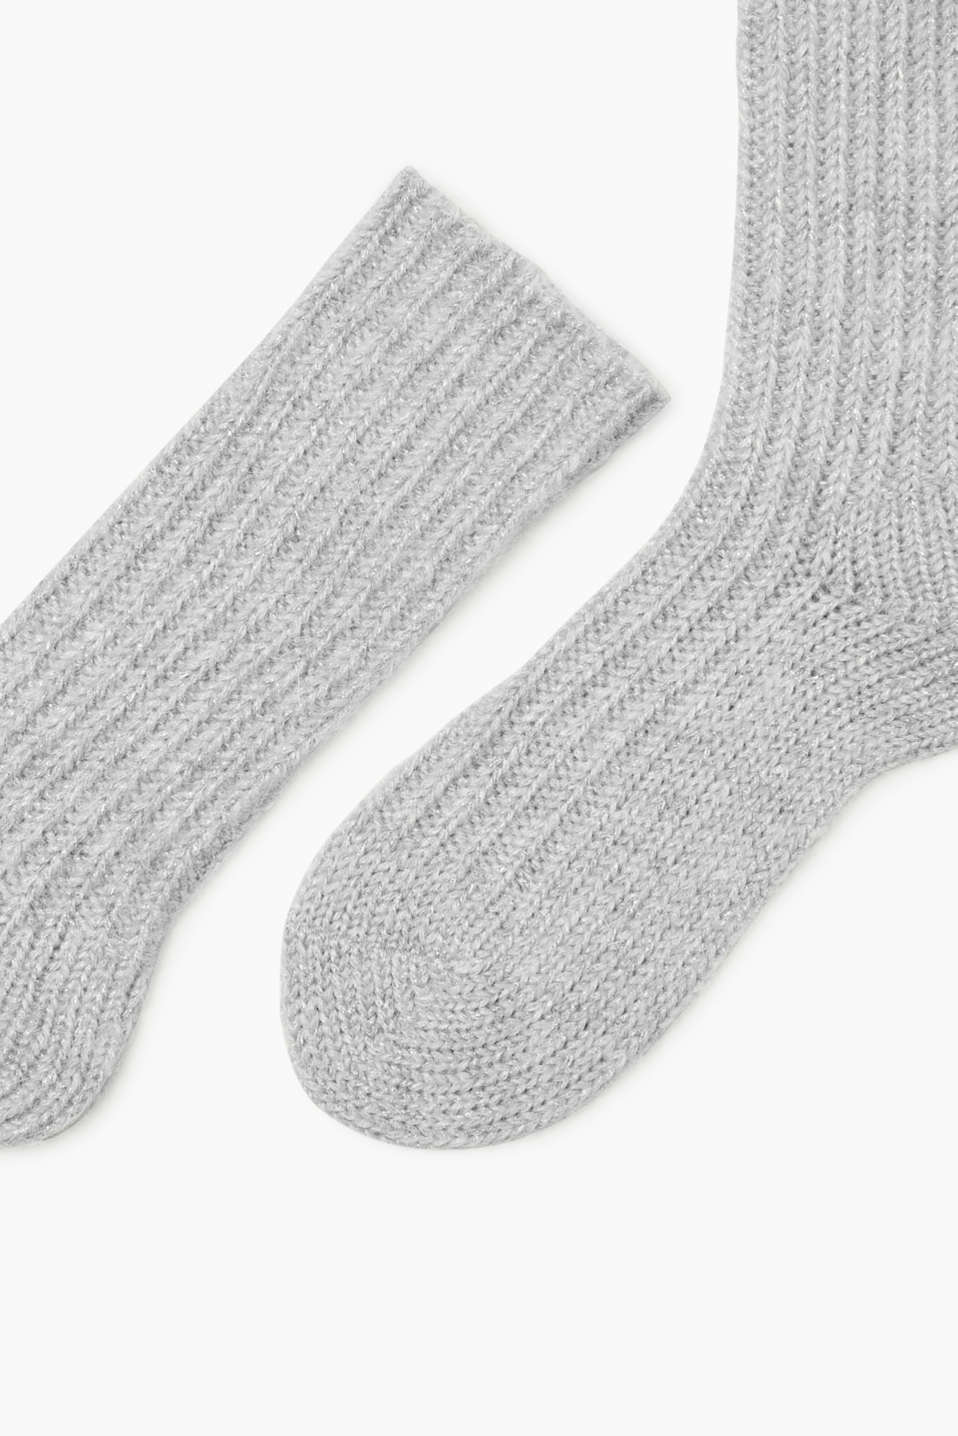 Thick glittery socks with mohair and wool